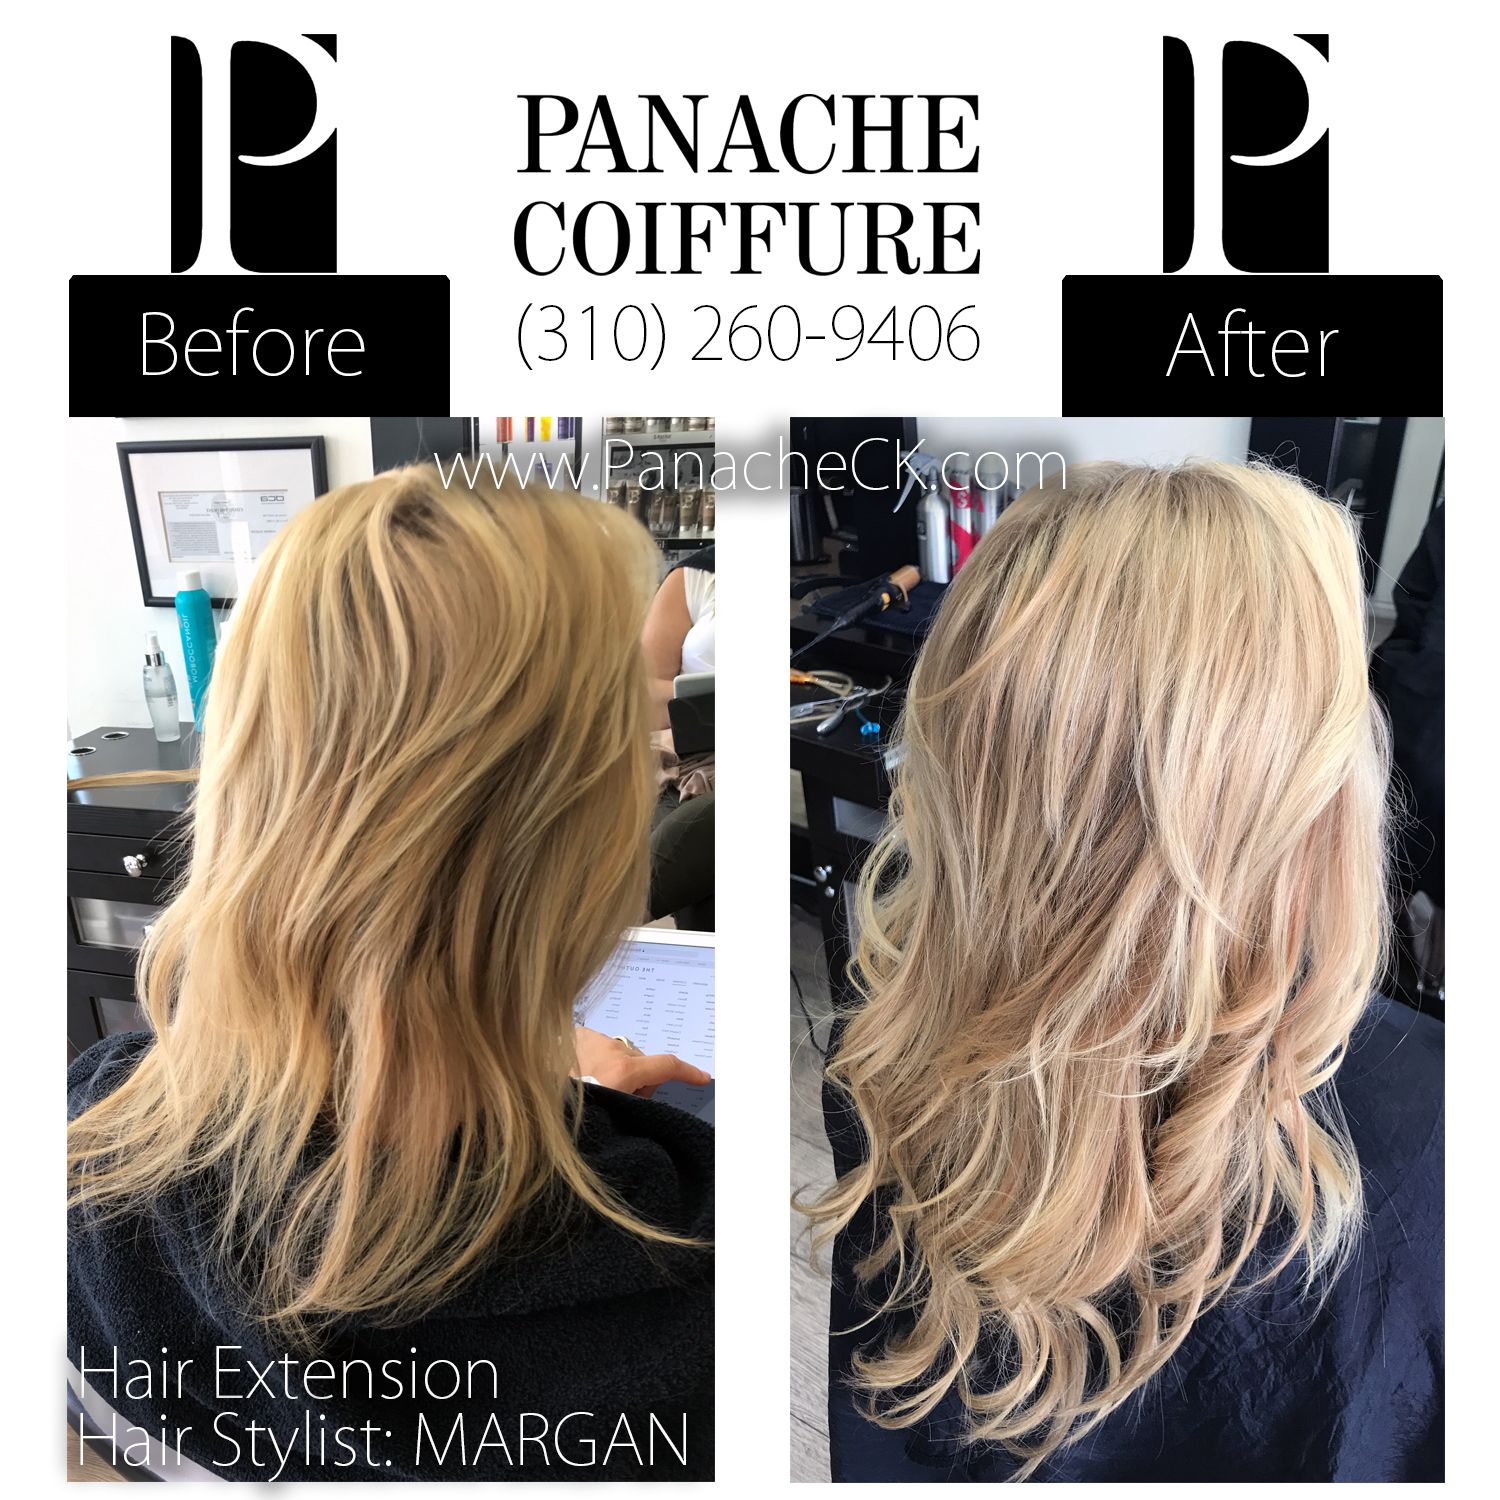 panache-coiffure-santa-monica-#1-hair-salon-hair-extension-compressor.jpg